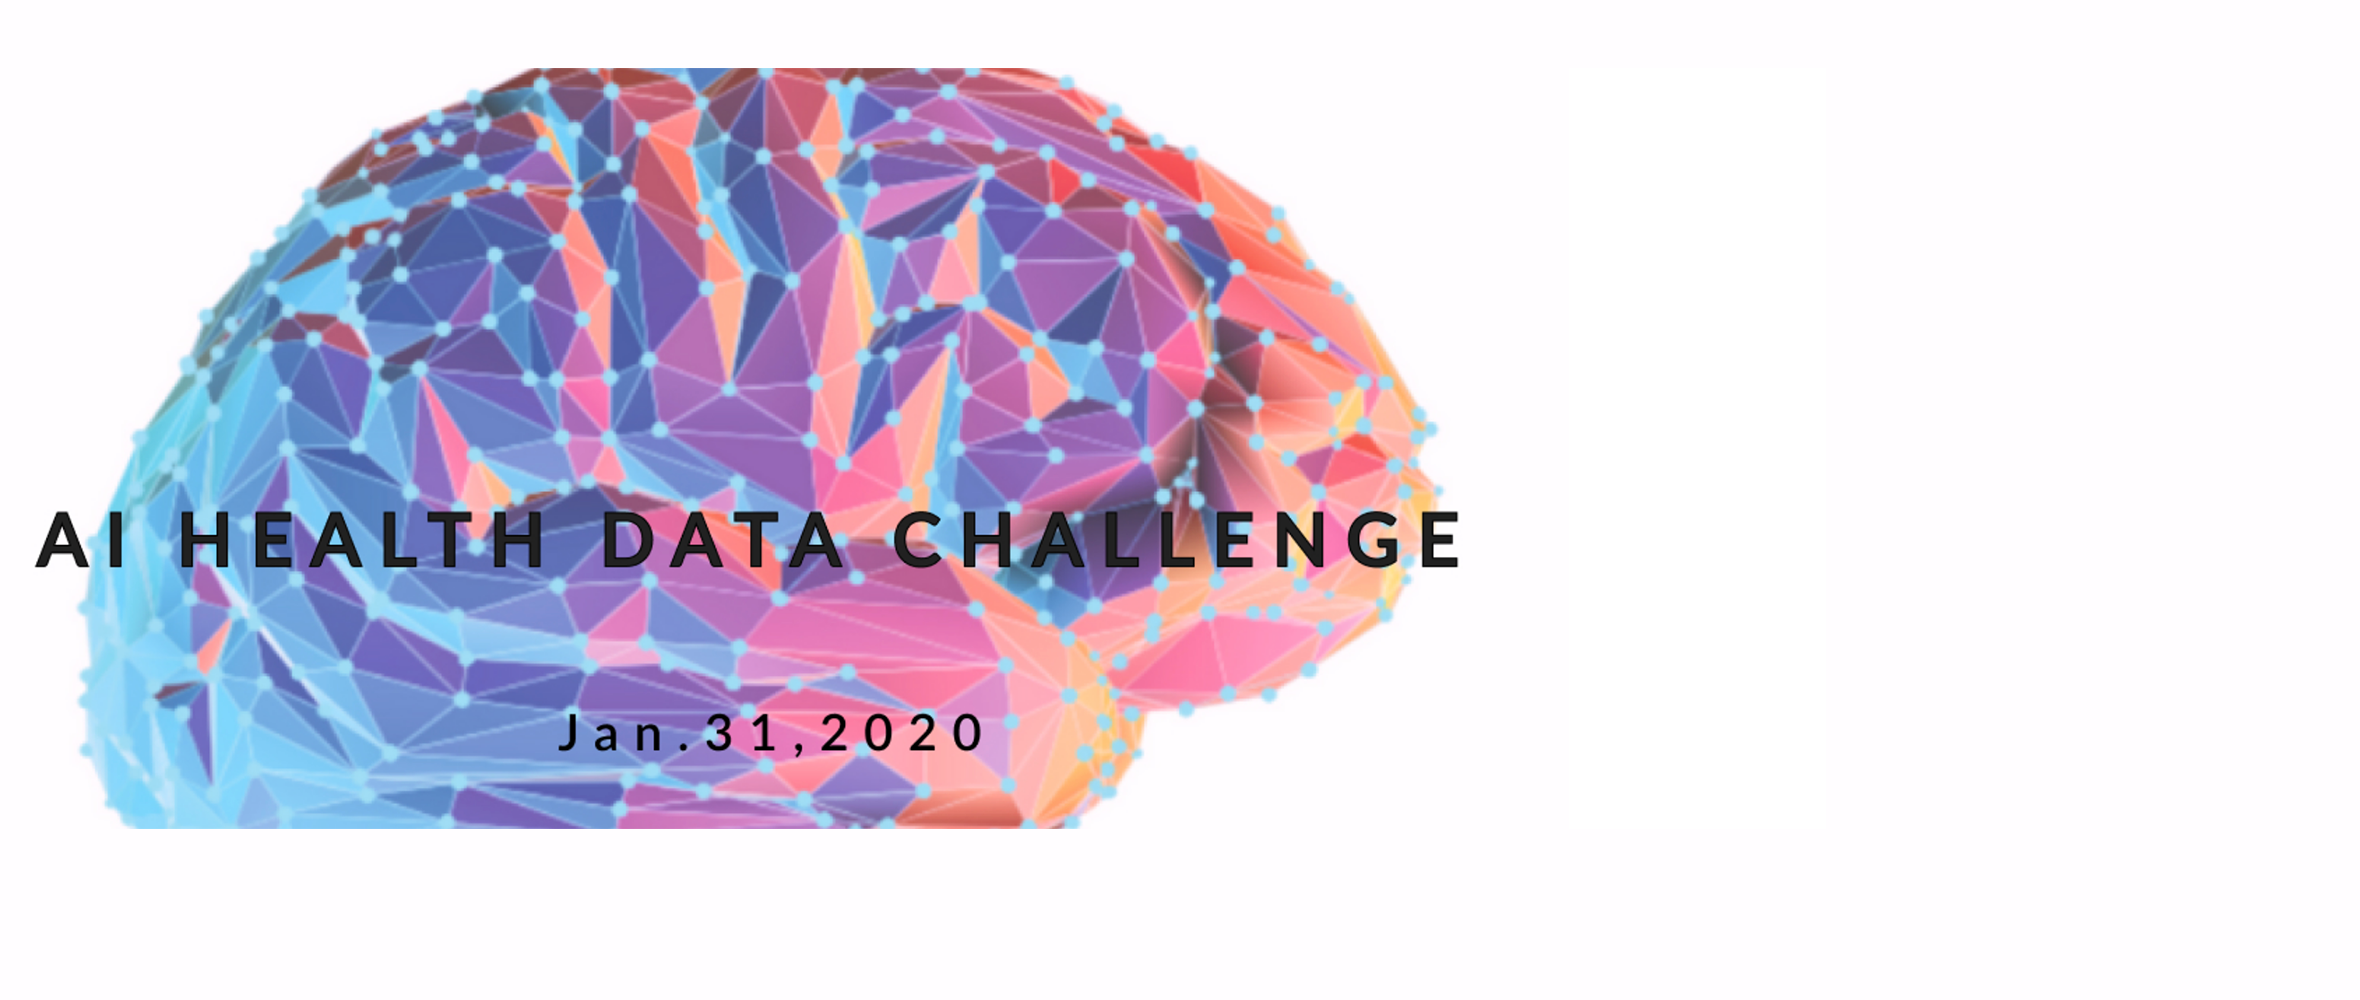 AI Health Data Challenge